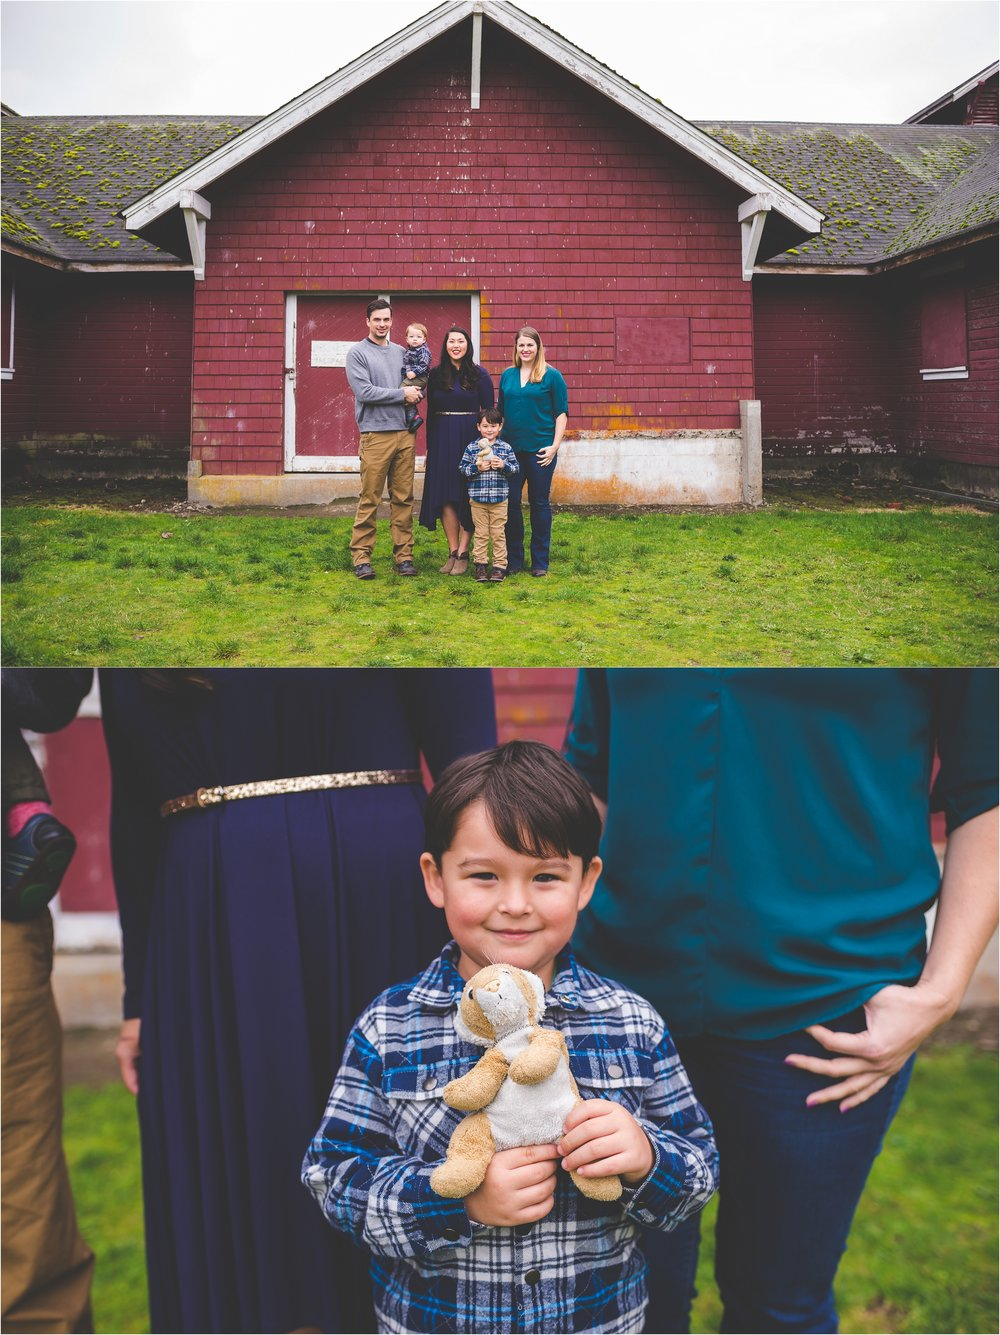 fort-steilacoom-park-family-session-jannicka-mayte-pacific-northwest-lifestyle-photographer_0001.jpg